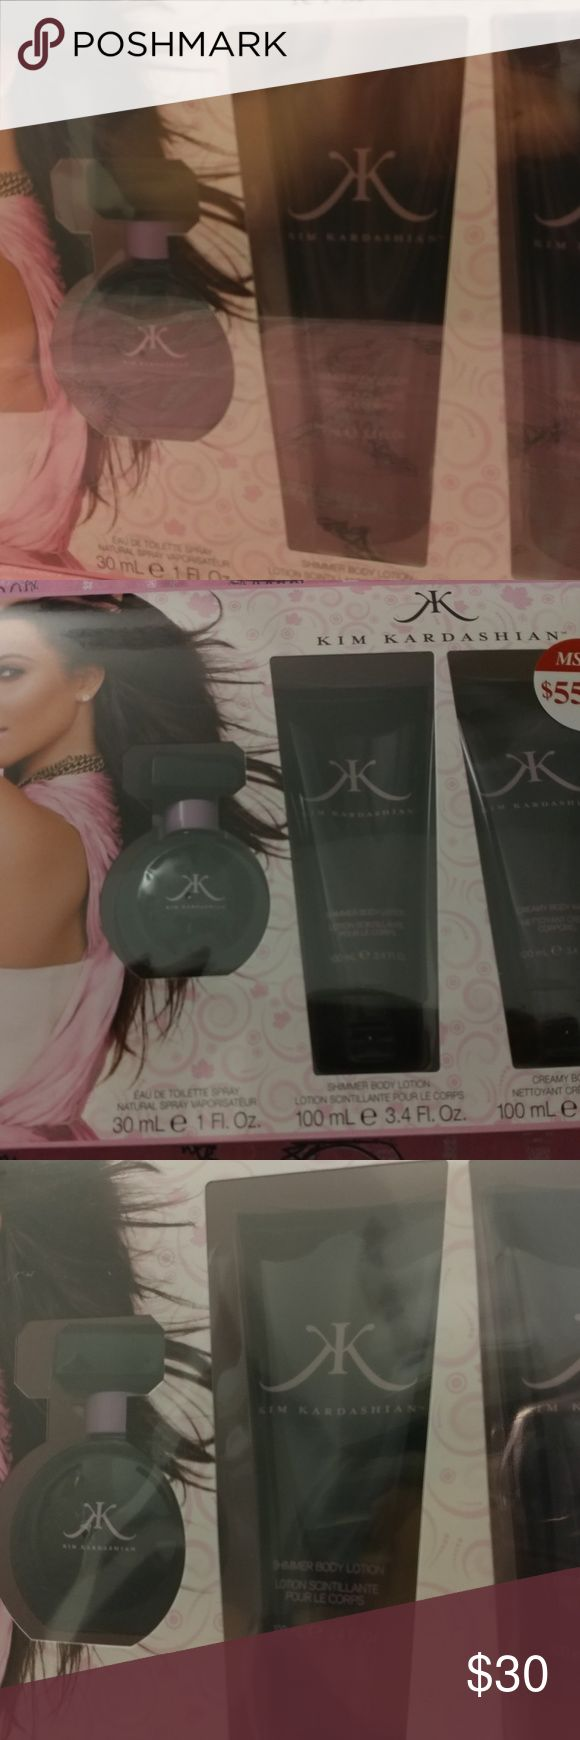 kim kardashian perfume complete set kim kardashian perfume complete set. Perfect gift! Great deal. kim kardashian Other